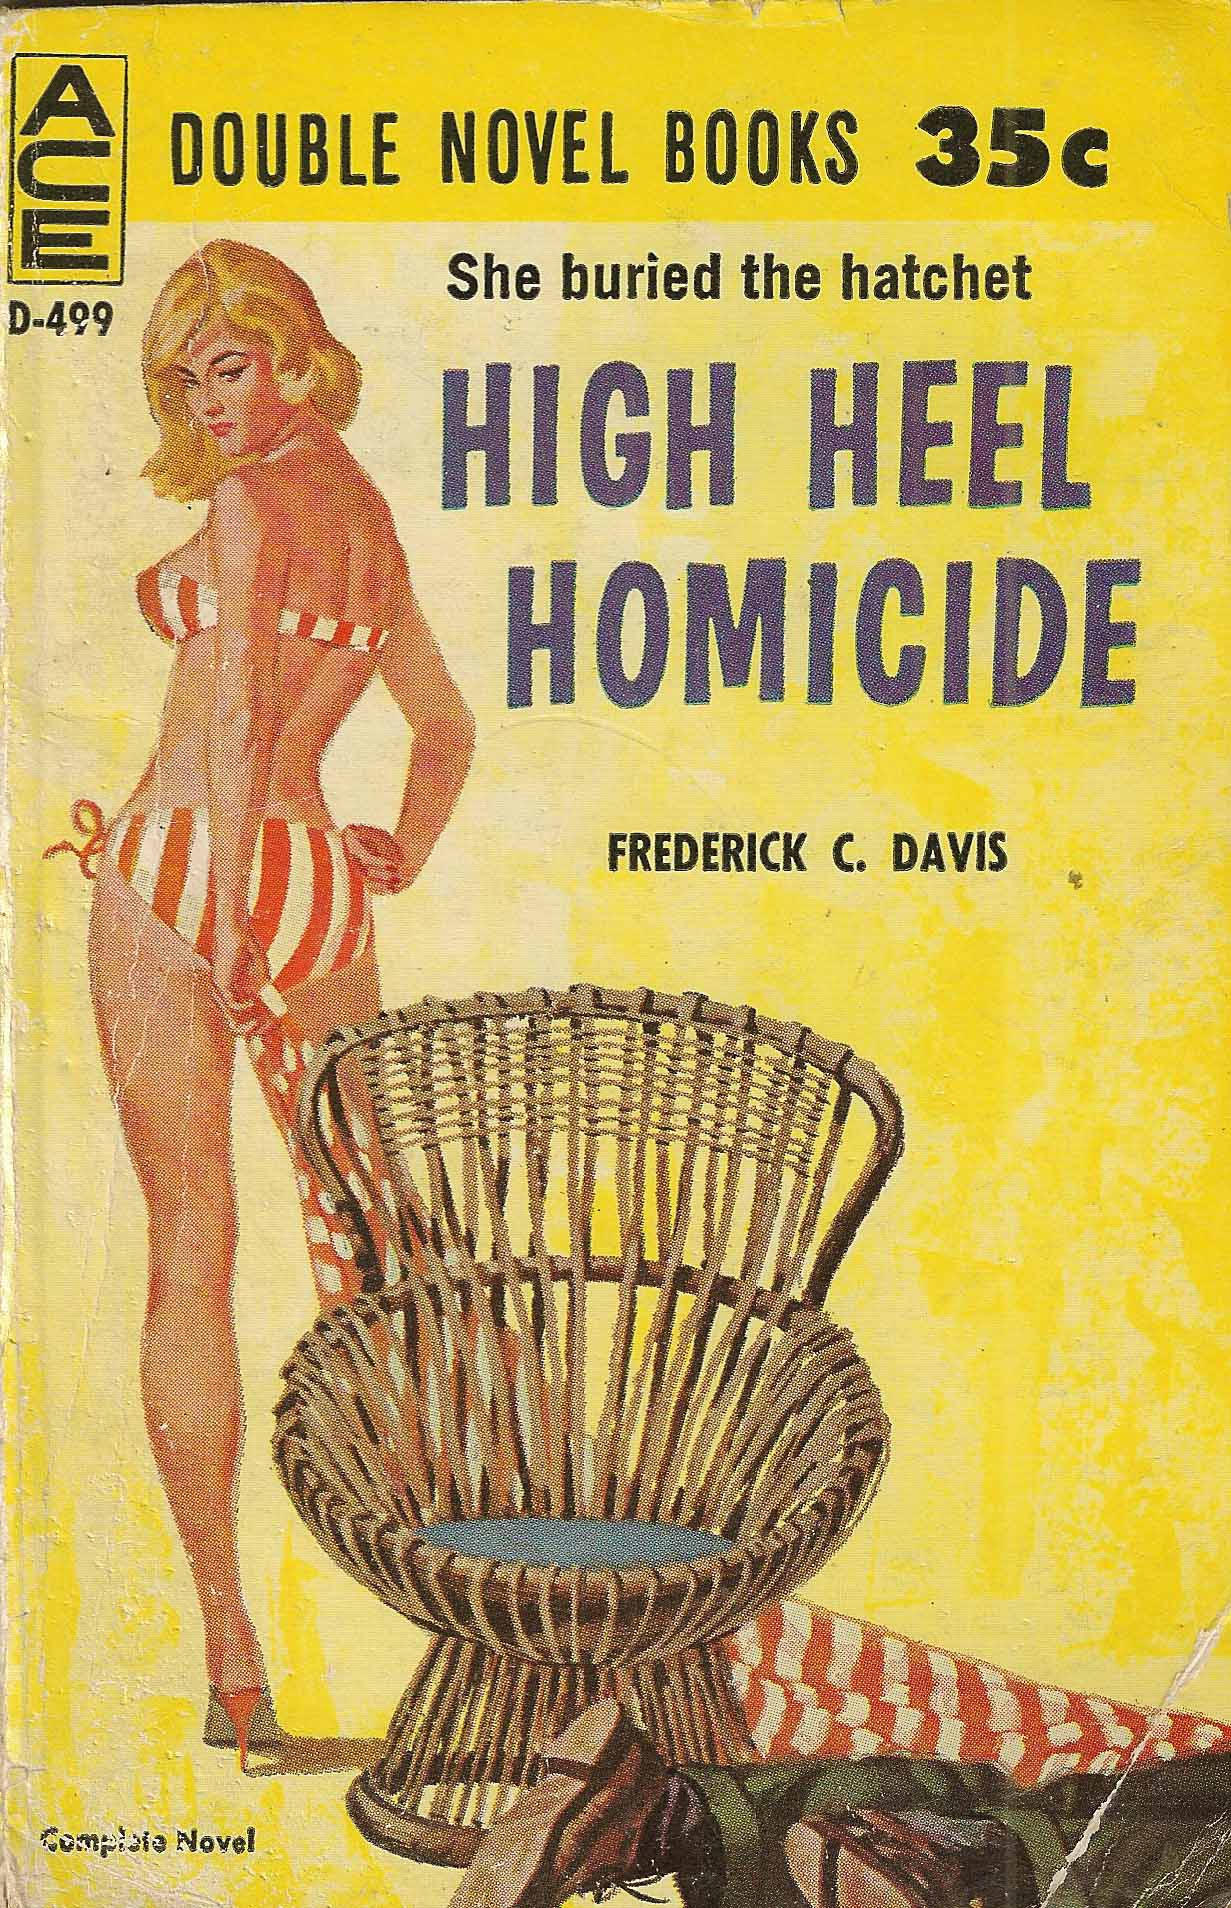 Image result for high heel homicide cover